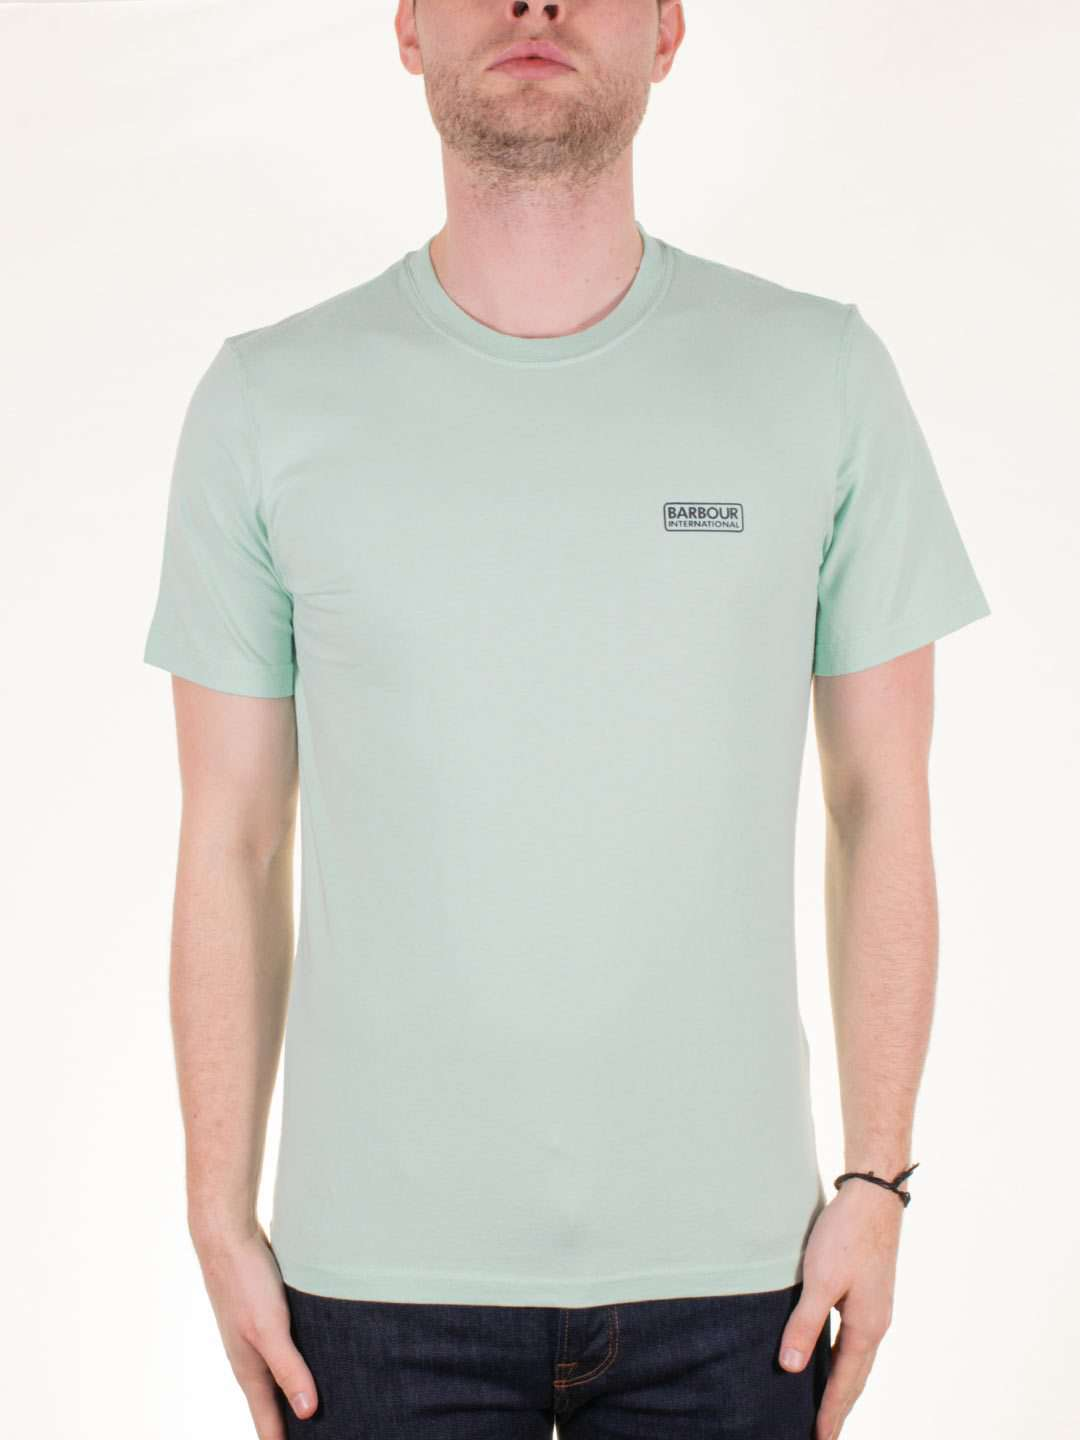 BARBOUR INTL. Small Logo SS T-Shirt - Revolver Menswear Bawtry